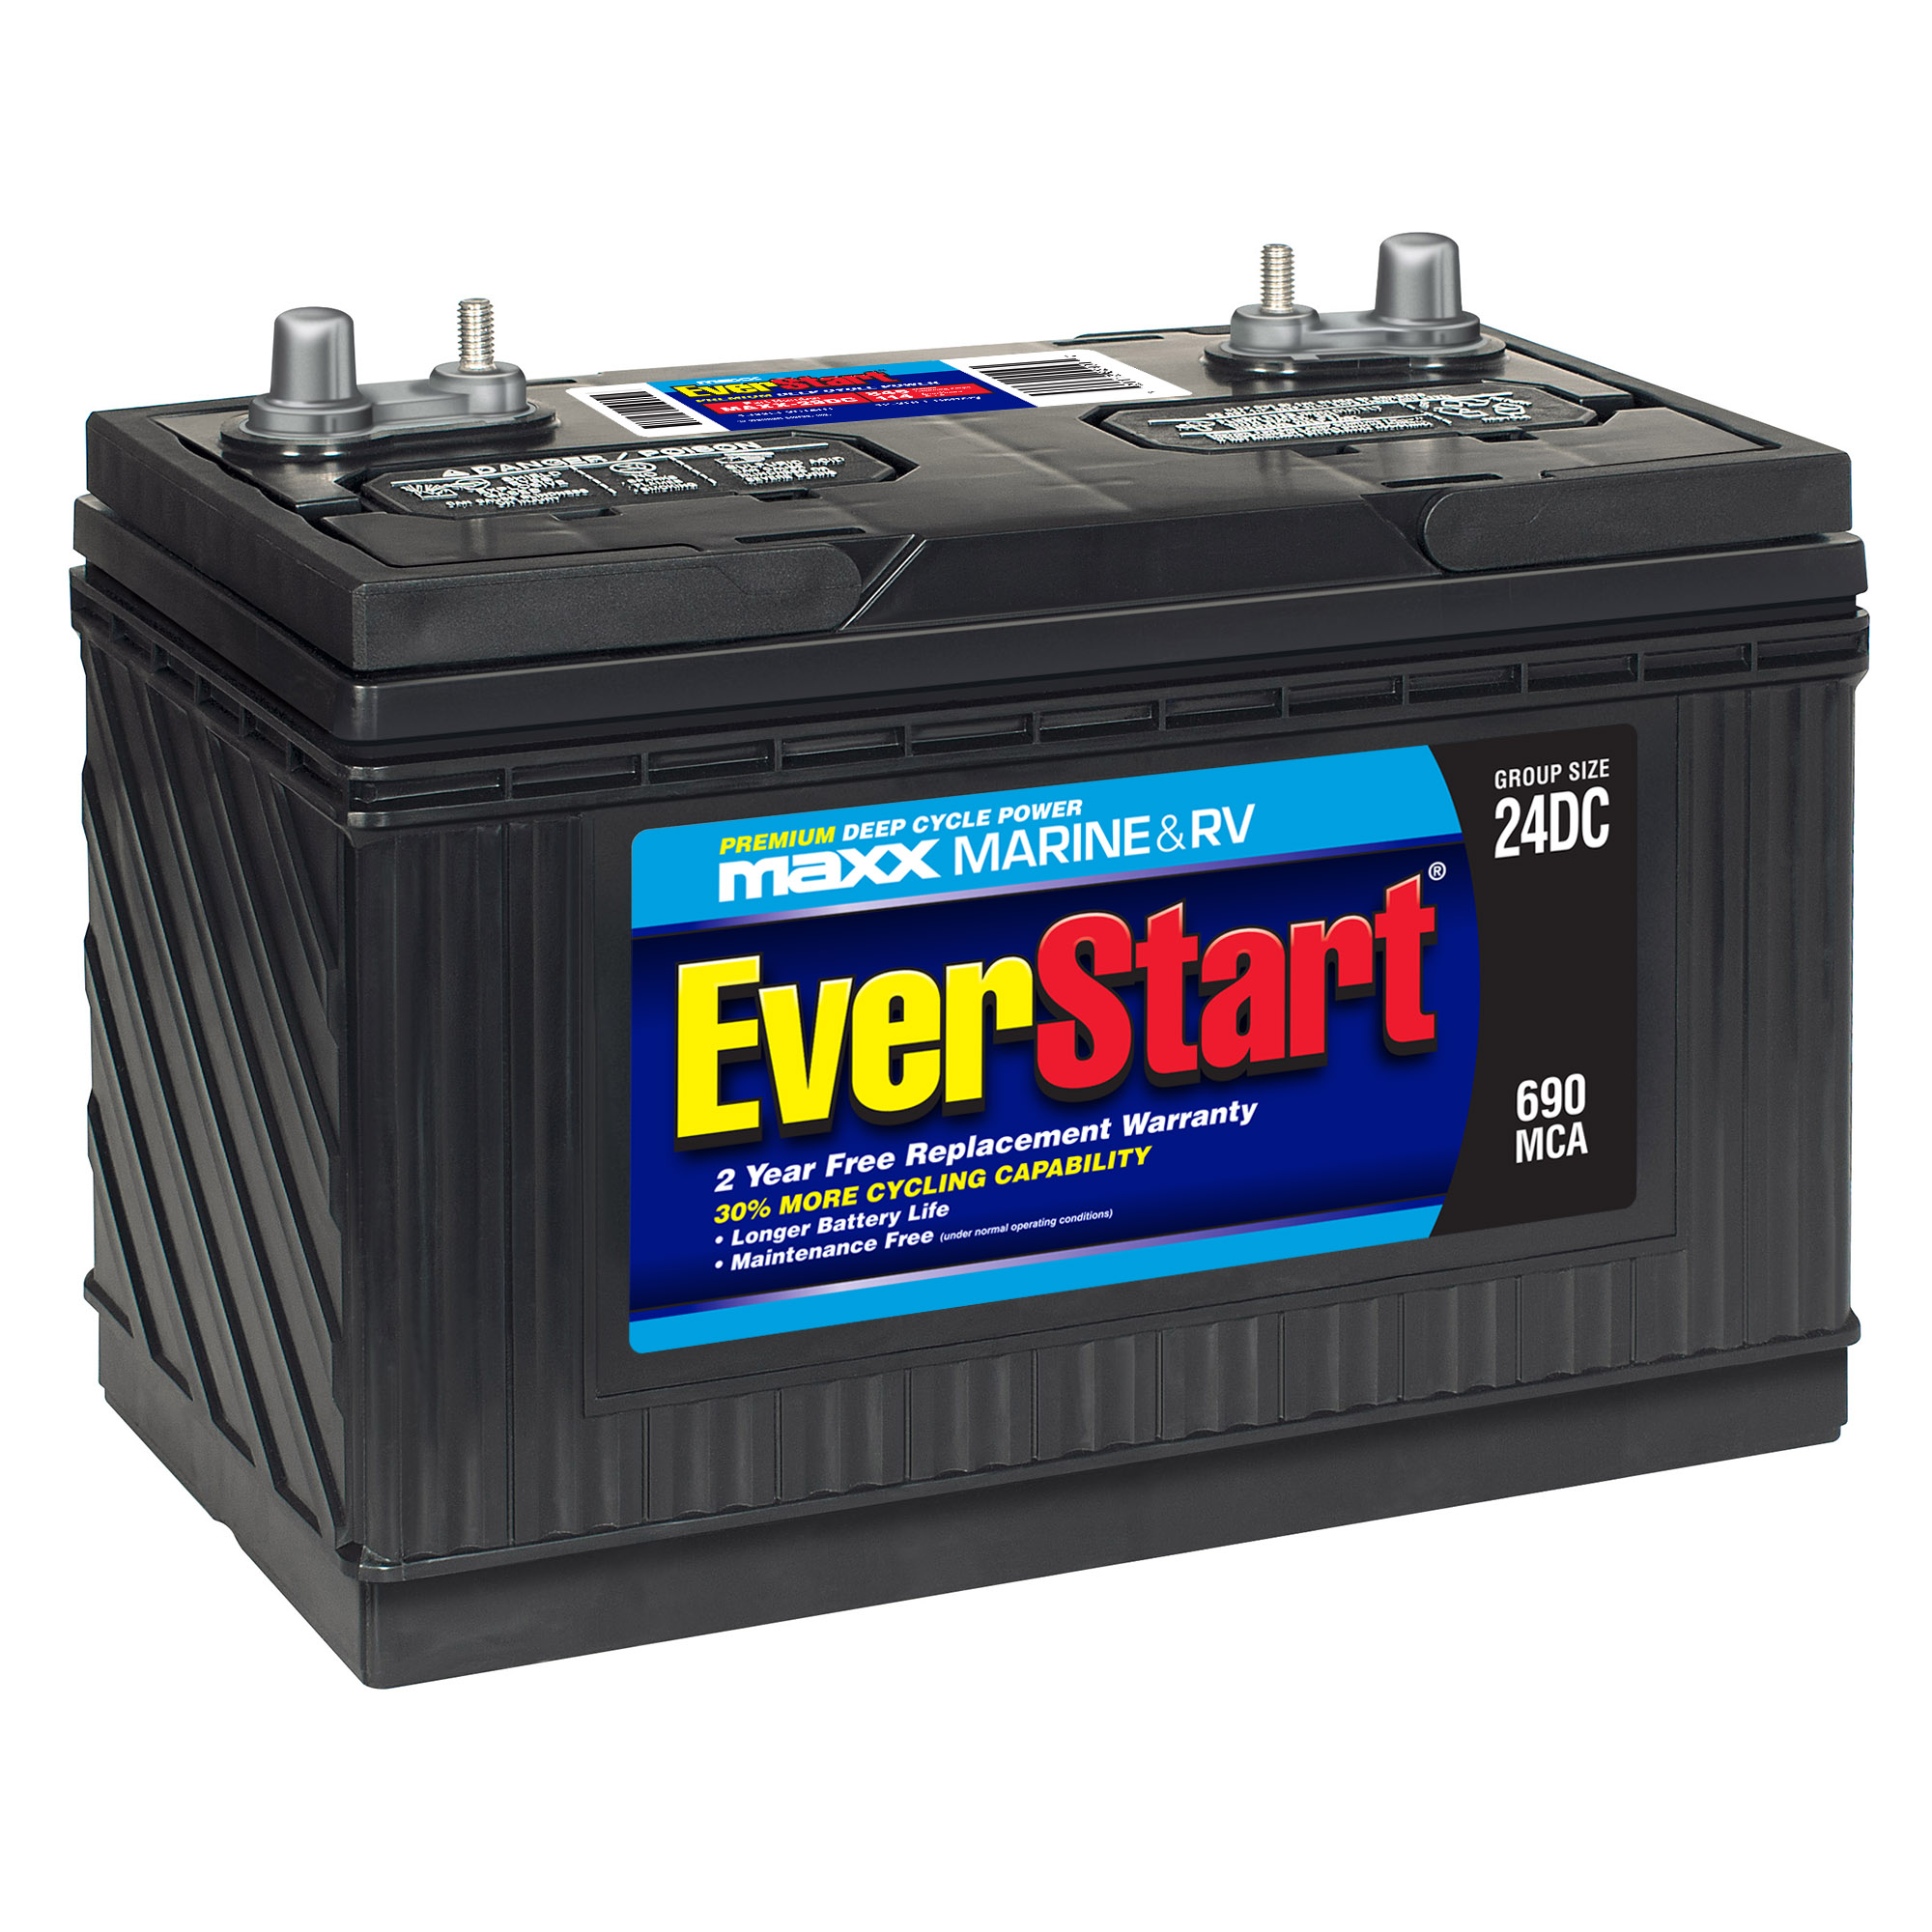 Everstart Battery Selector Guideeverstart Battery Selector Guide Walmart Battery Finderwalmart